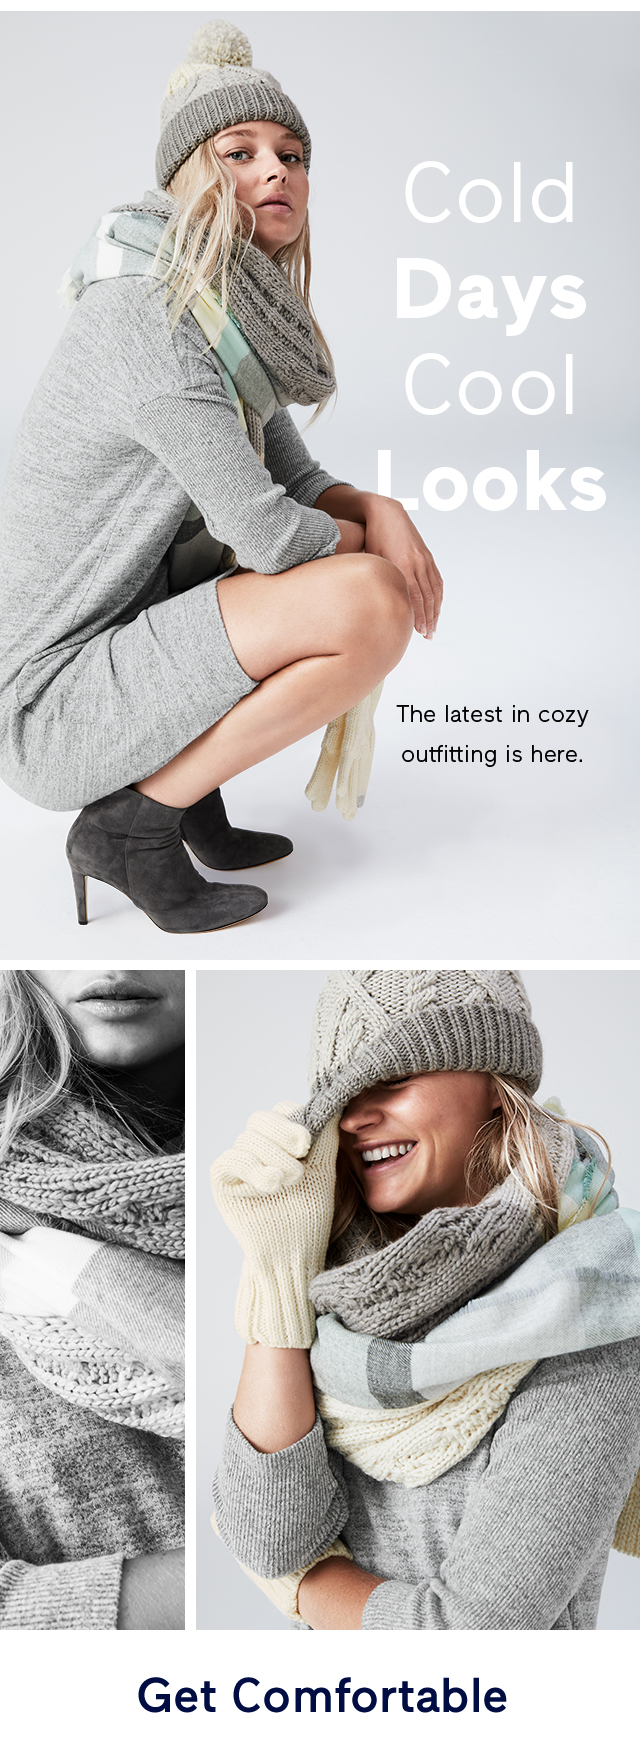 Cold Days Cool Looks | Get Comfortable